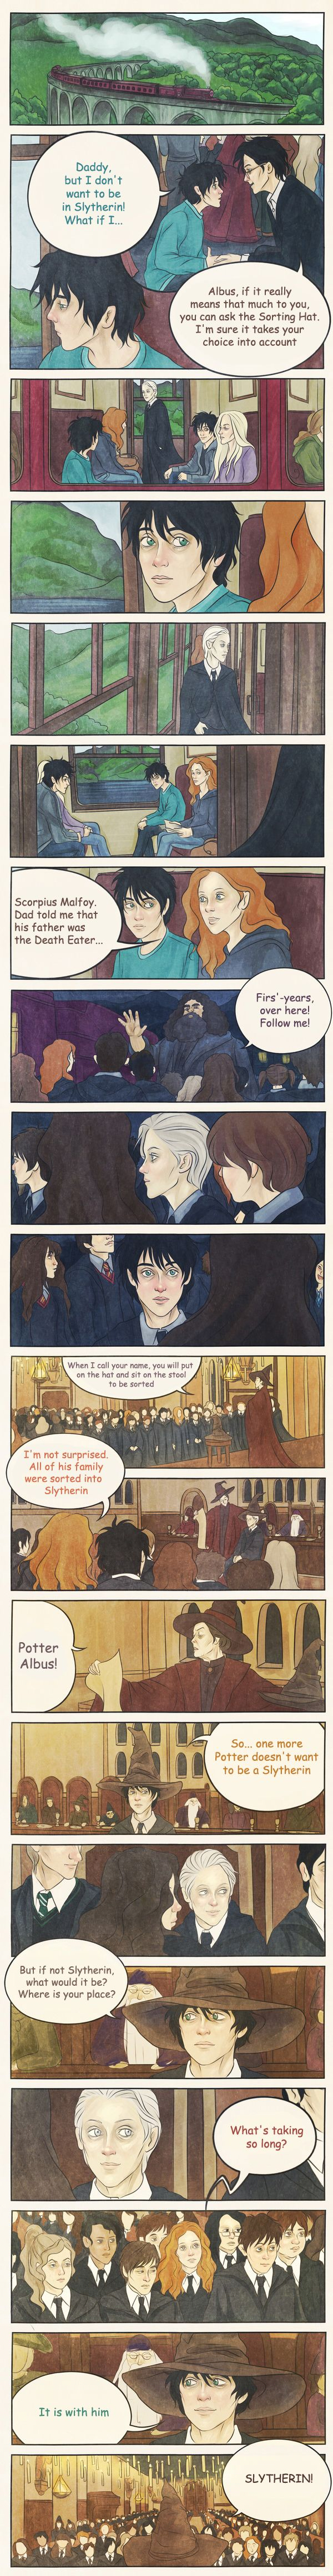 Not Slytherin? by AnastasiaMantihora.deviantart.com on @deviantART. The sorting of Albus Severus Potter. Aww